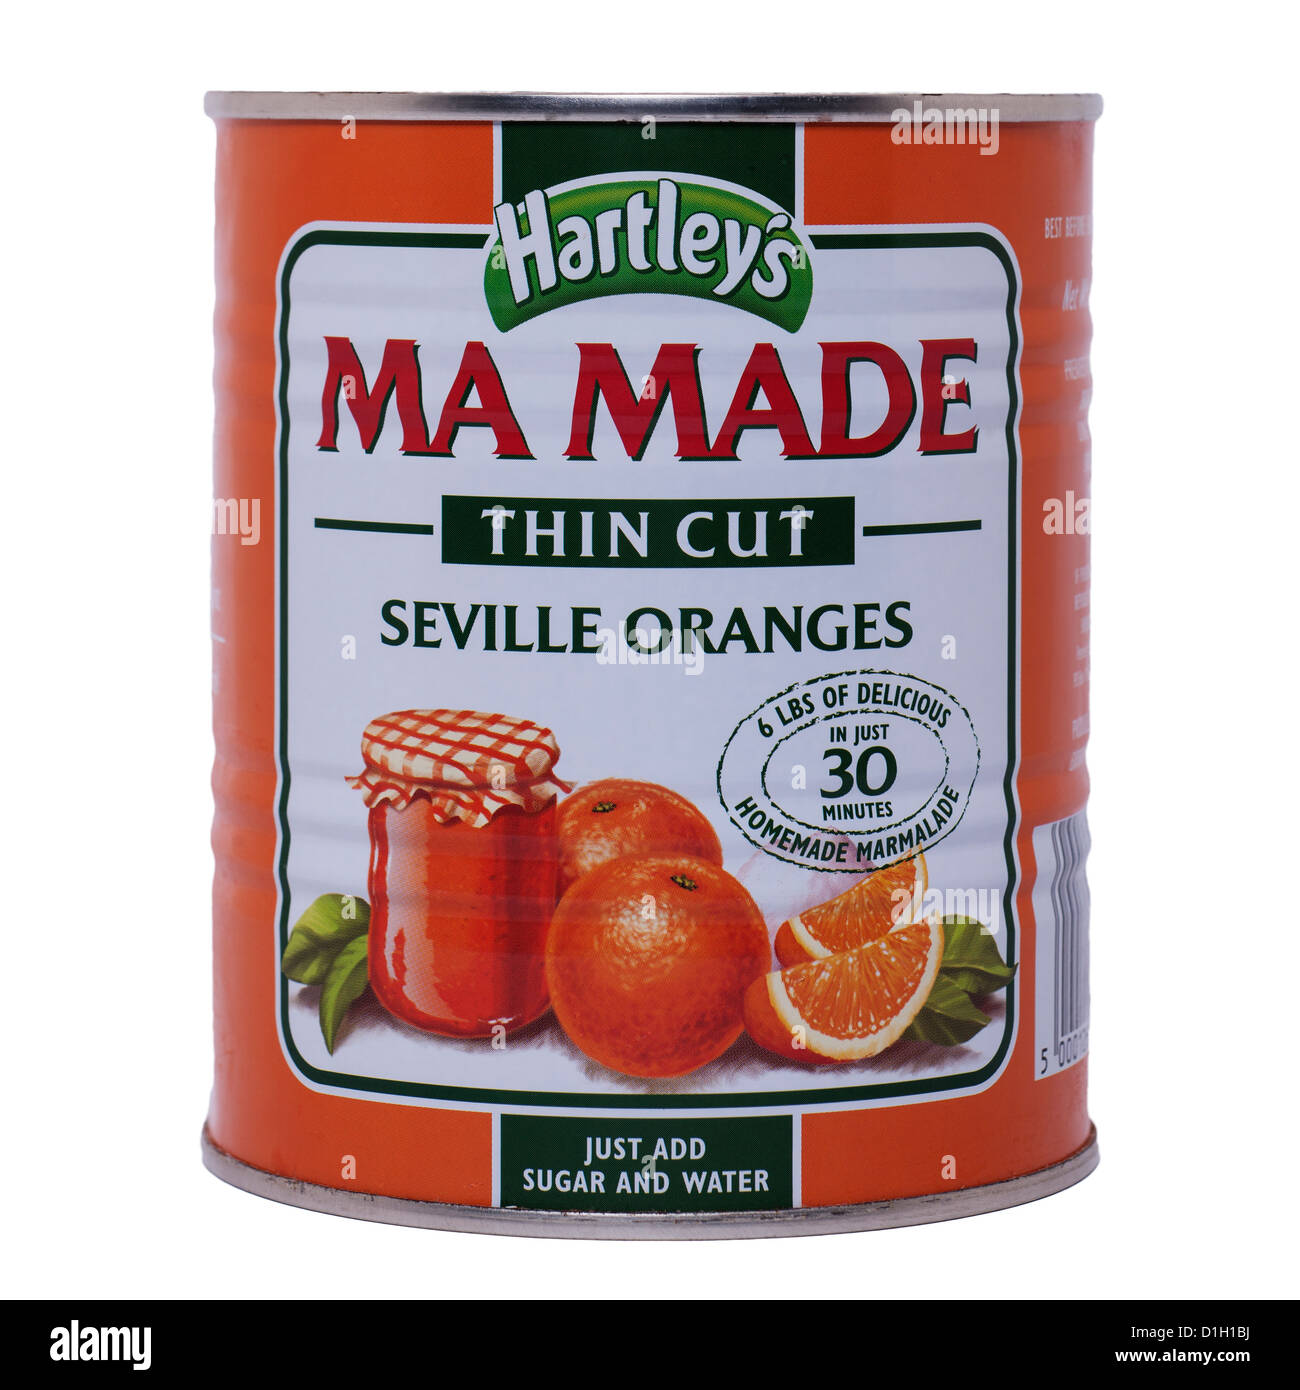 A tin of Hartley's Ma Made thin cut seville oranges on a white background - Stock Image